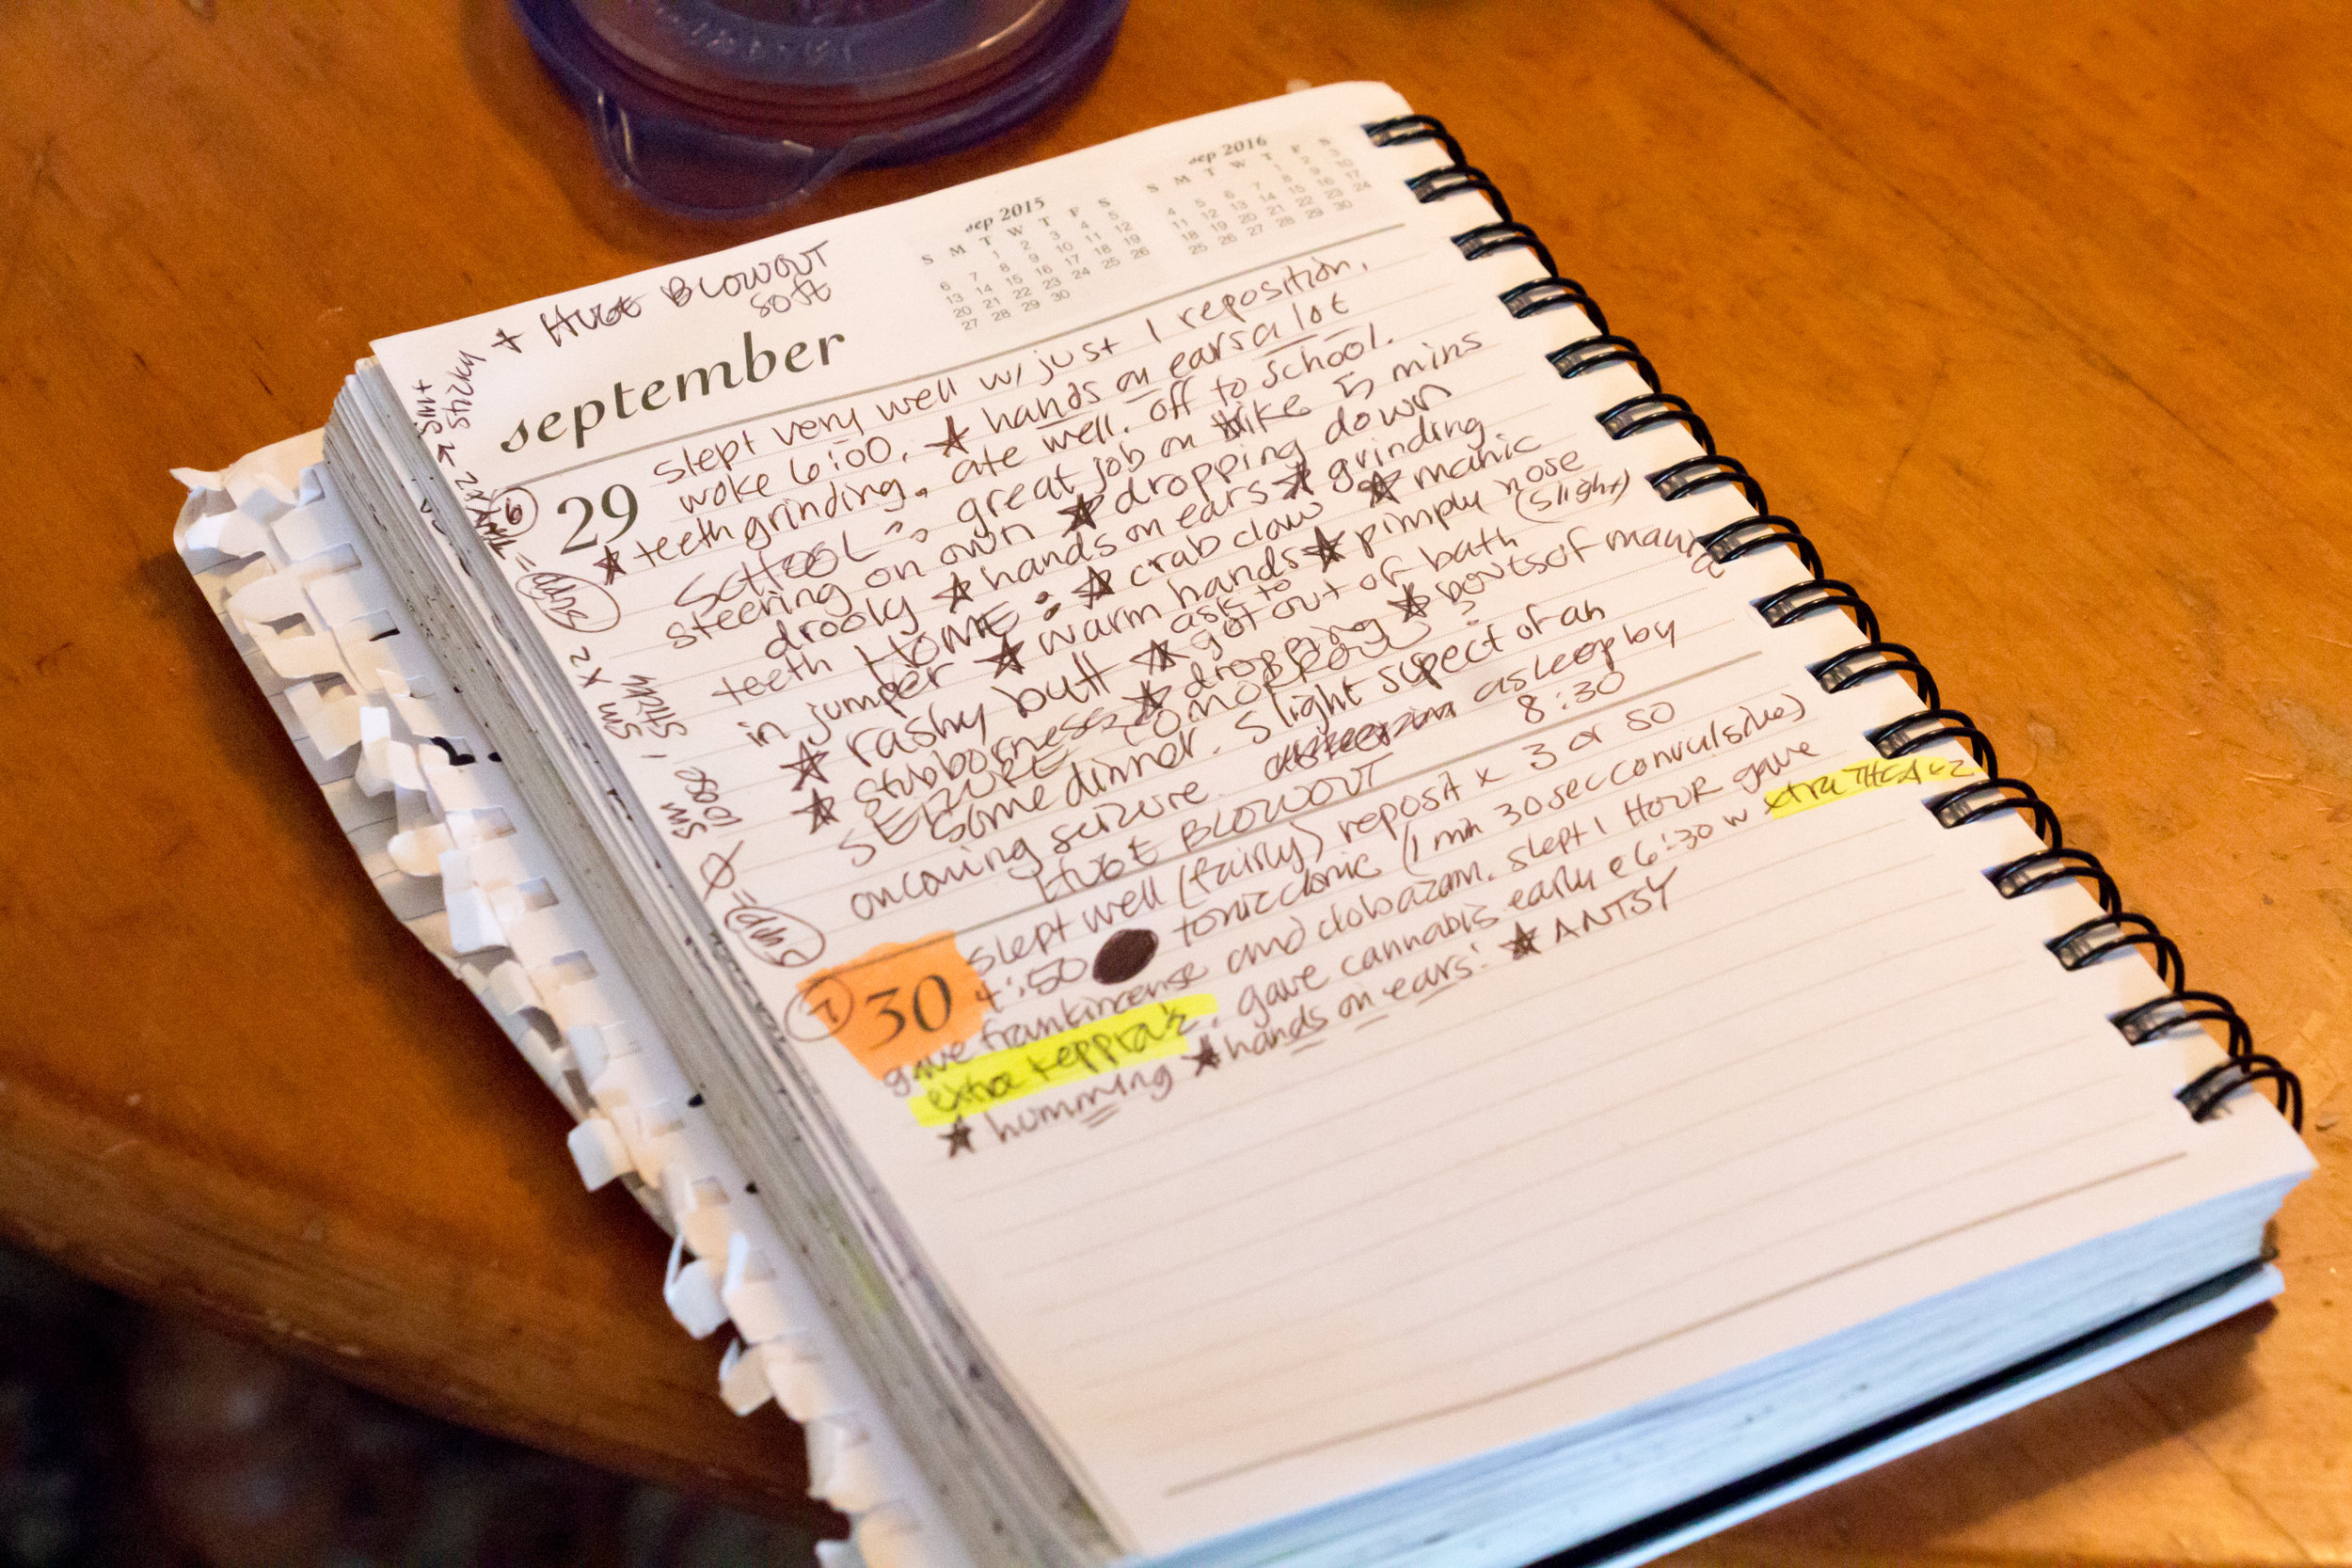 For most of her son's life Christy Shake has kept a detailed daily log of her son's behaviors, his medicines, his symptoms, his bowel movements. The notes have helped her learn to predict when a grand mal seizure is imminent.  Several stars are a warning and orange highlighter indicates a grand mal seizure.